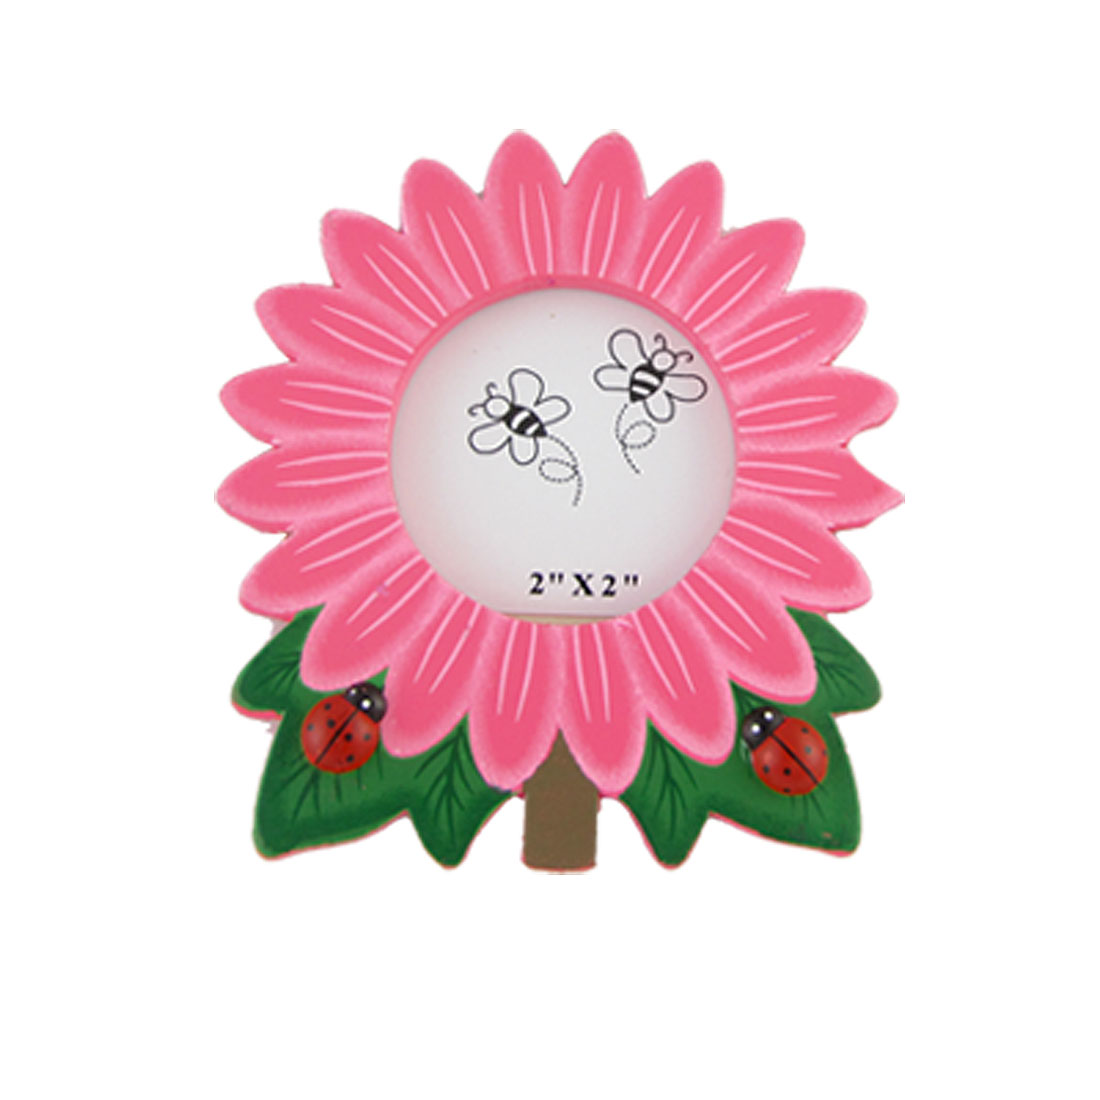 Cartoon tyle Pink Sunflower Wooden Photo Frame Ornament